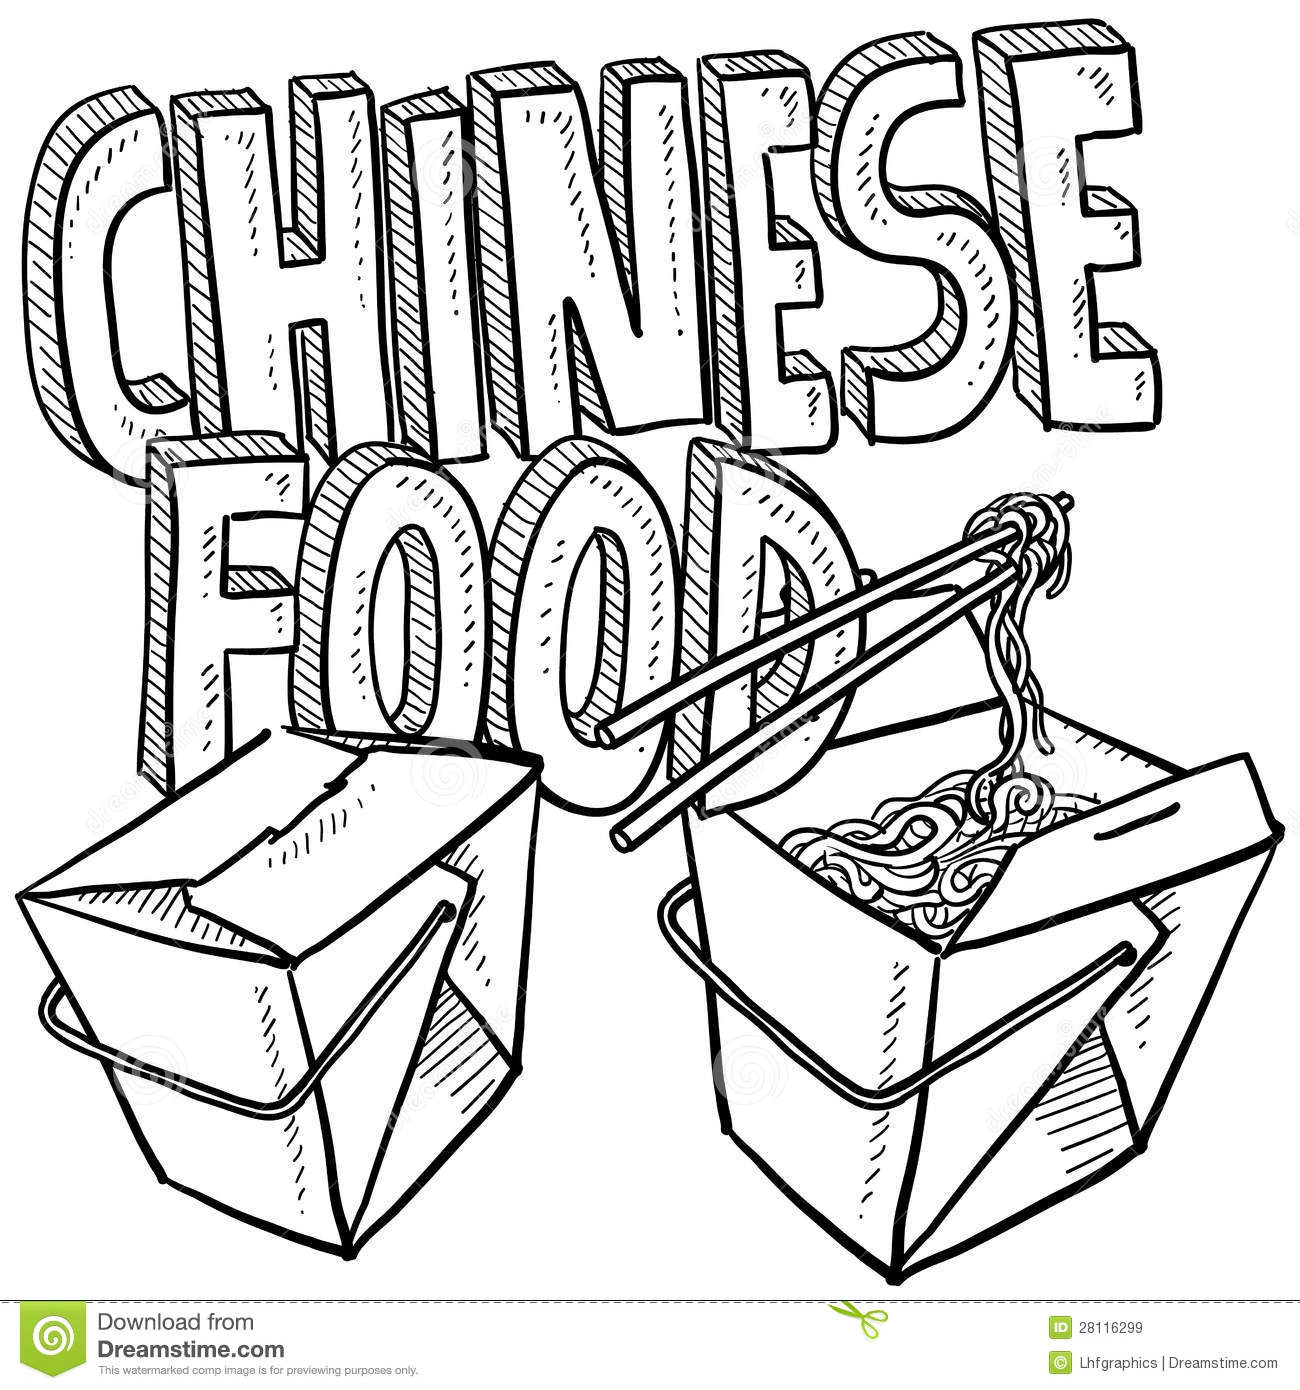 Chinese Food Sketch Royalty Free Stock Images